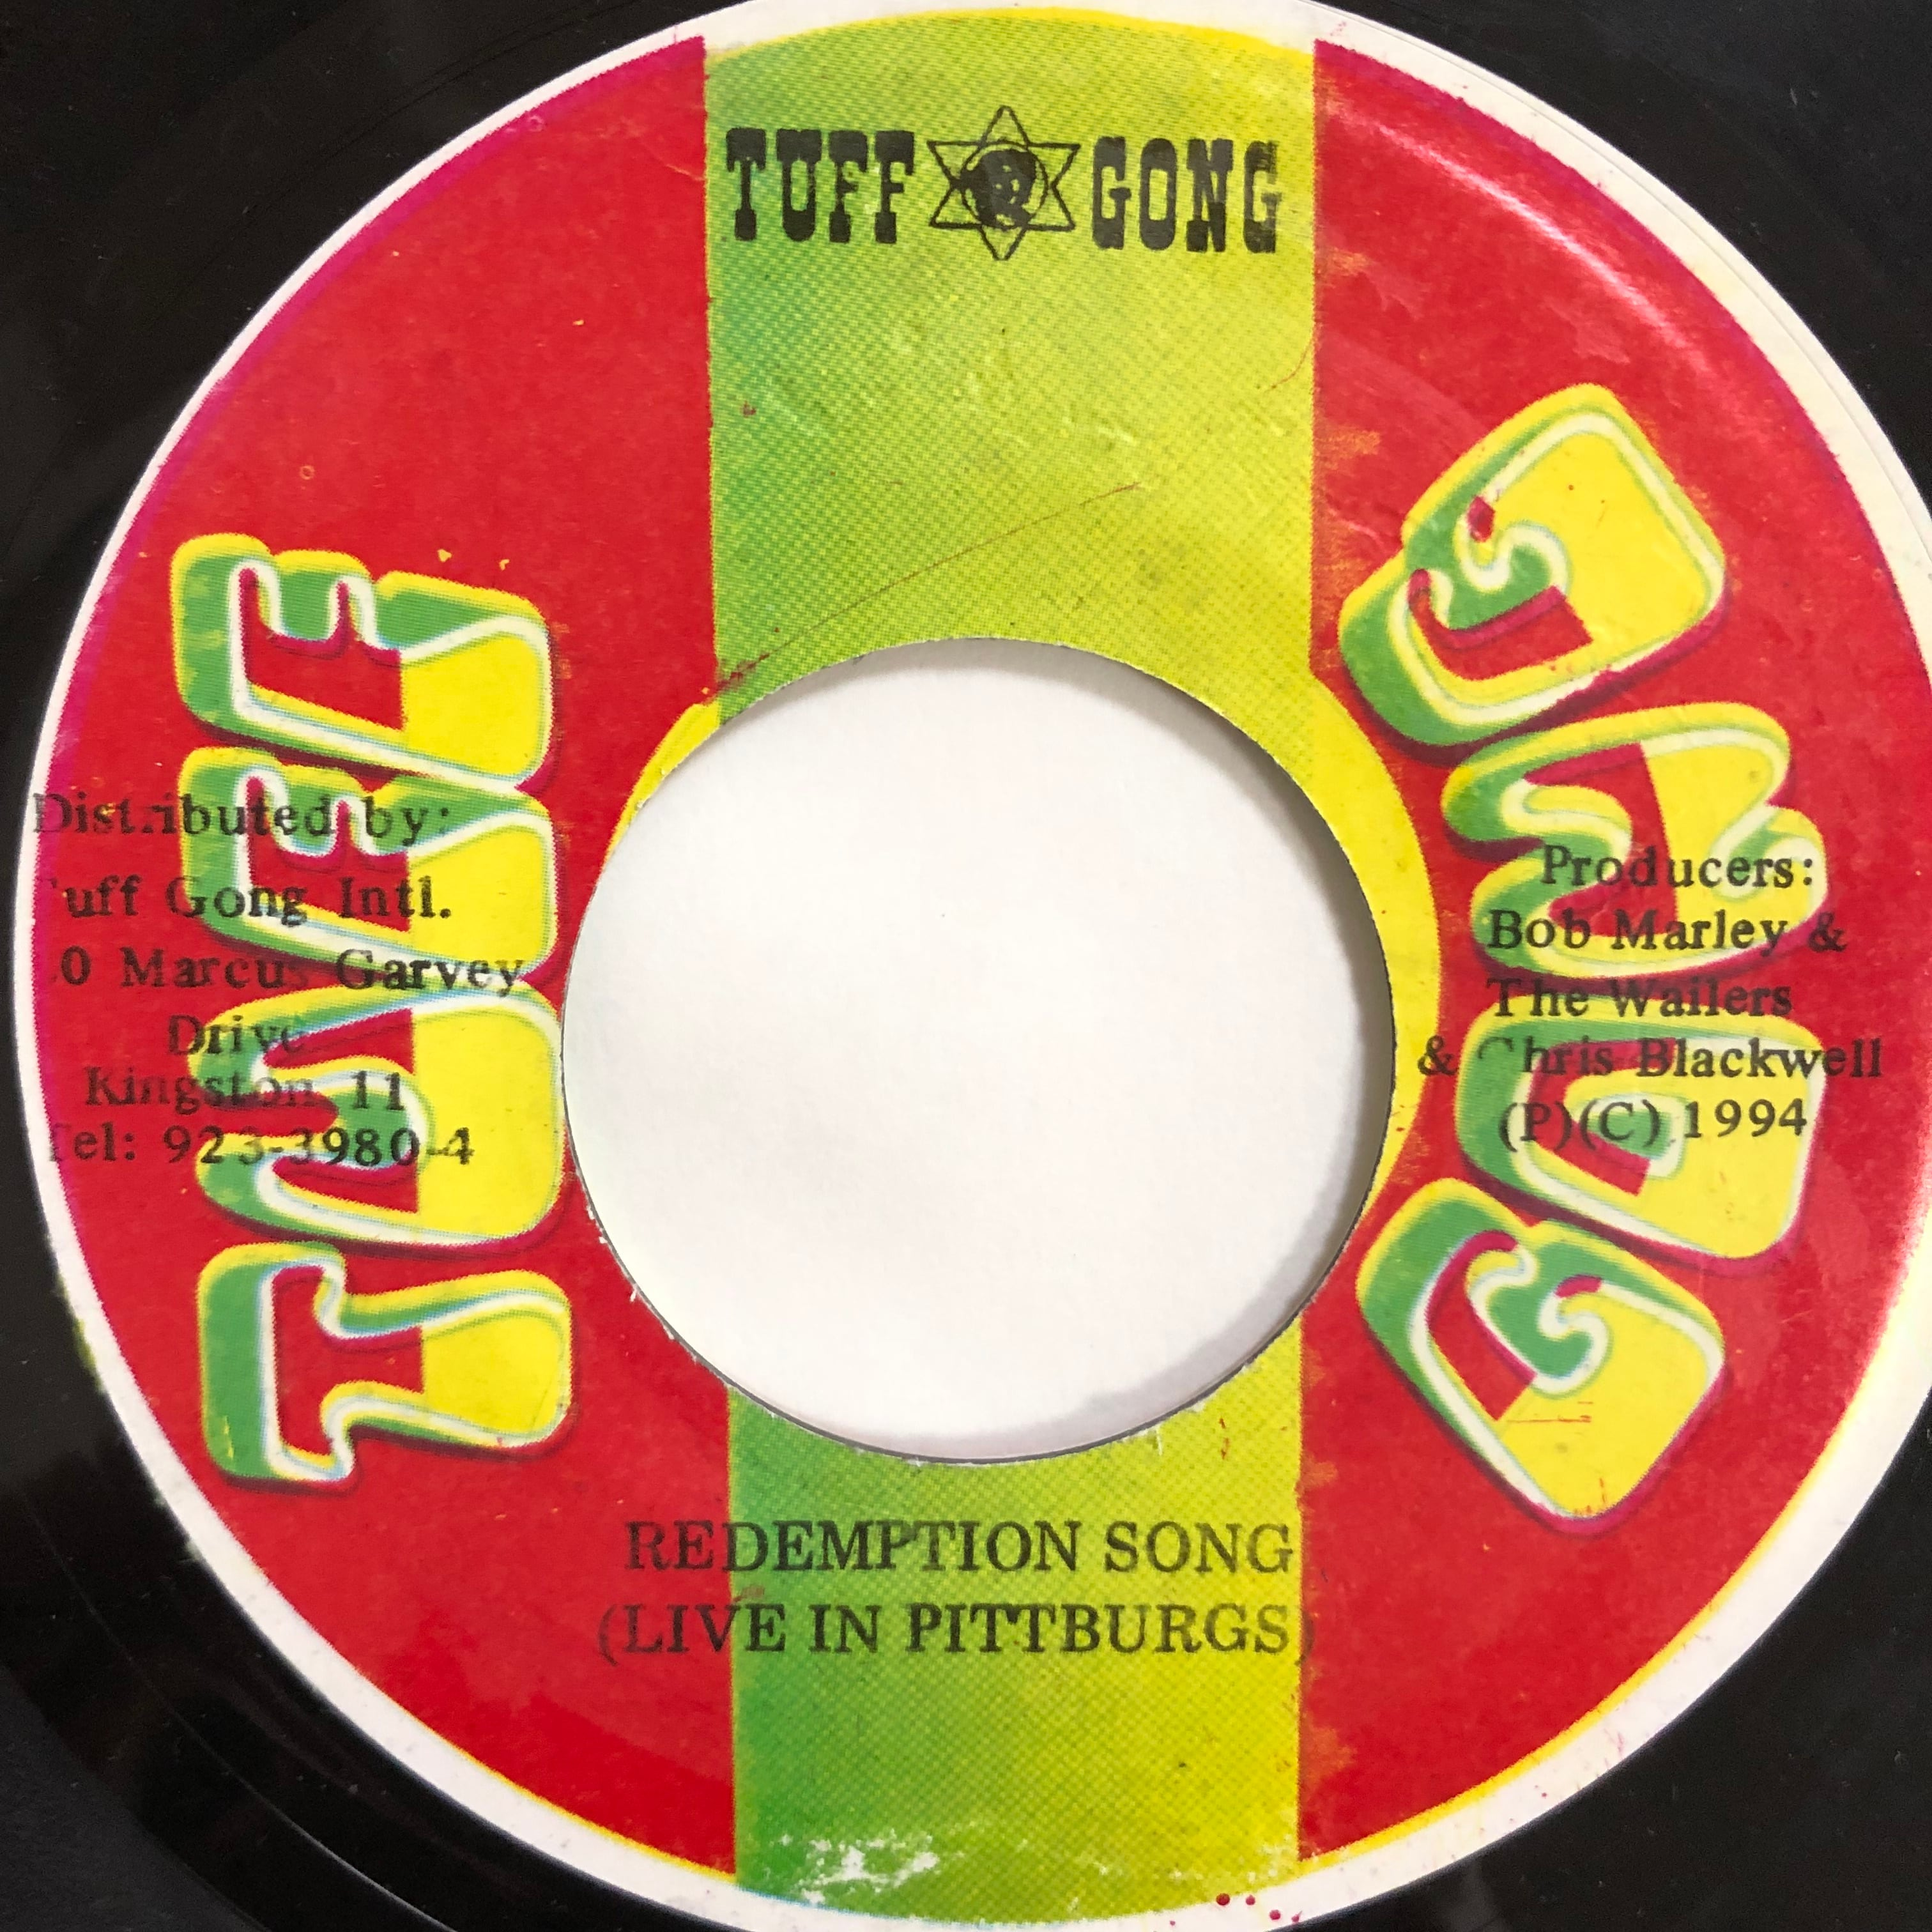 Bob Marley (ボブ・マーリー) & The Wailers (ウェイラーズ) - Redemption Song【7-20204】